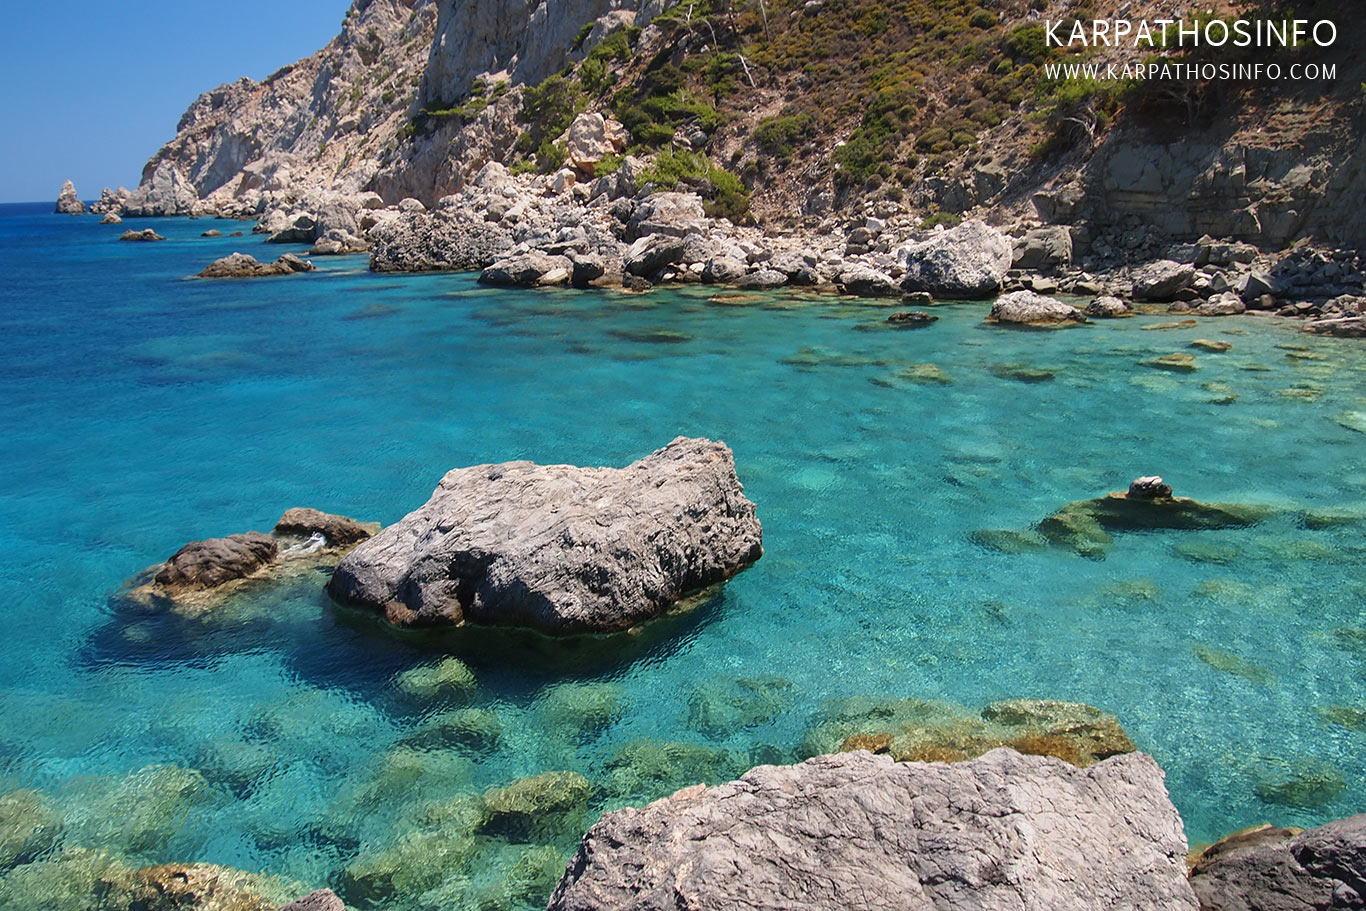 Agios Nikolaos beach Spoa, Karpathos, great for diving